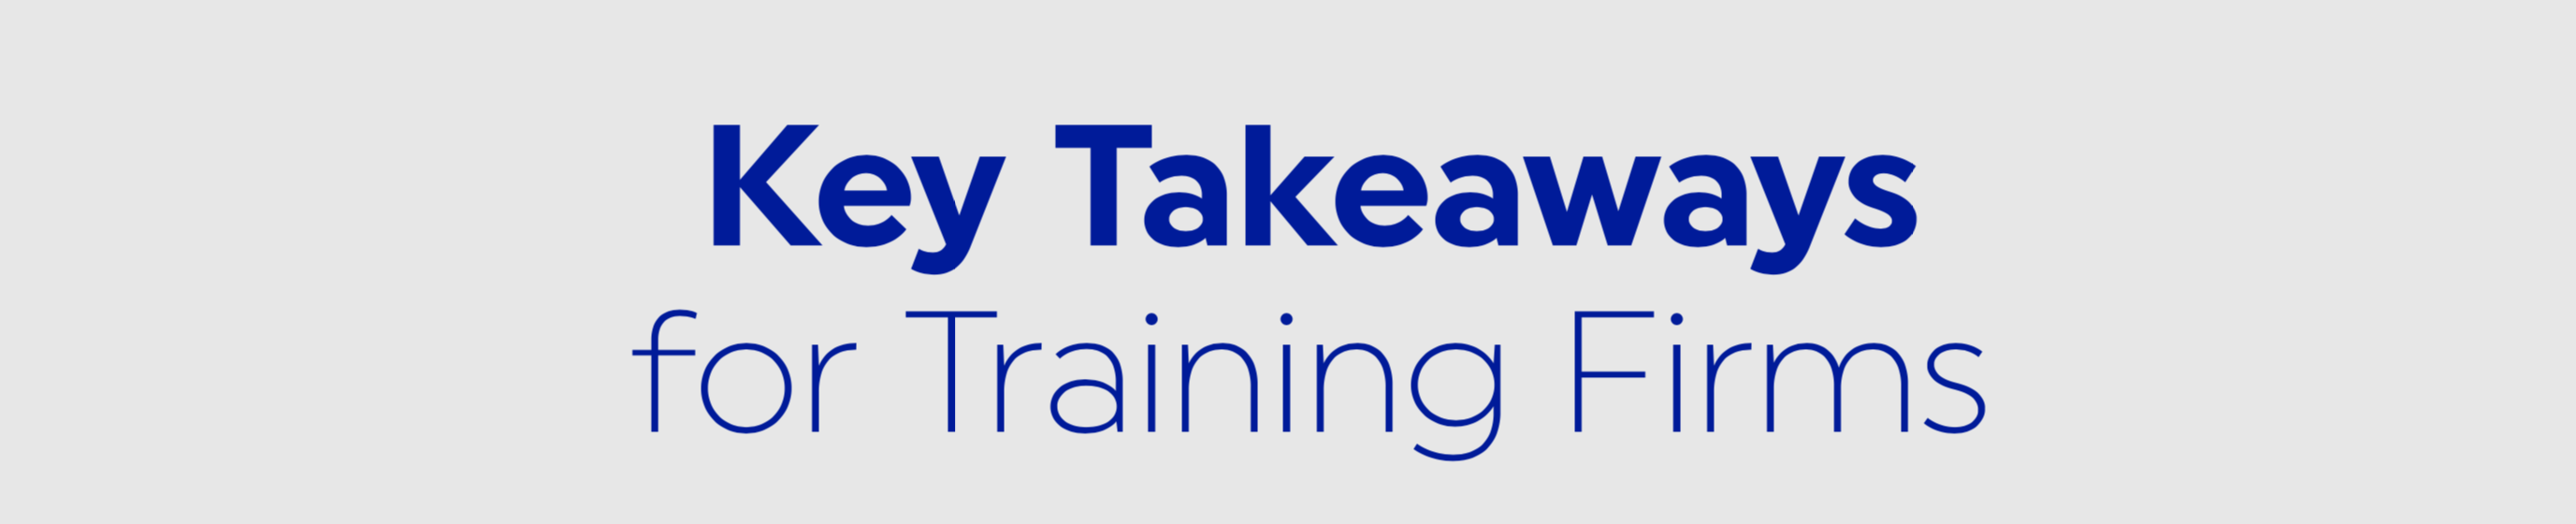 Training Firms